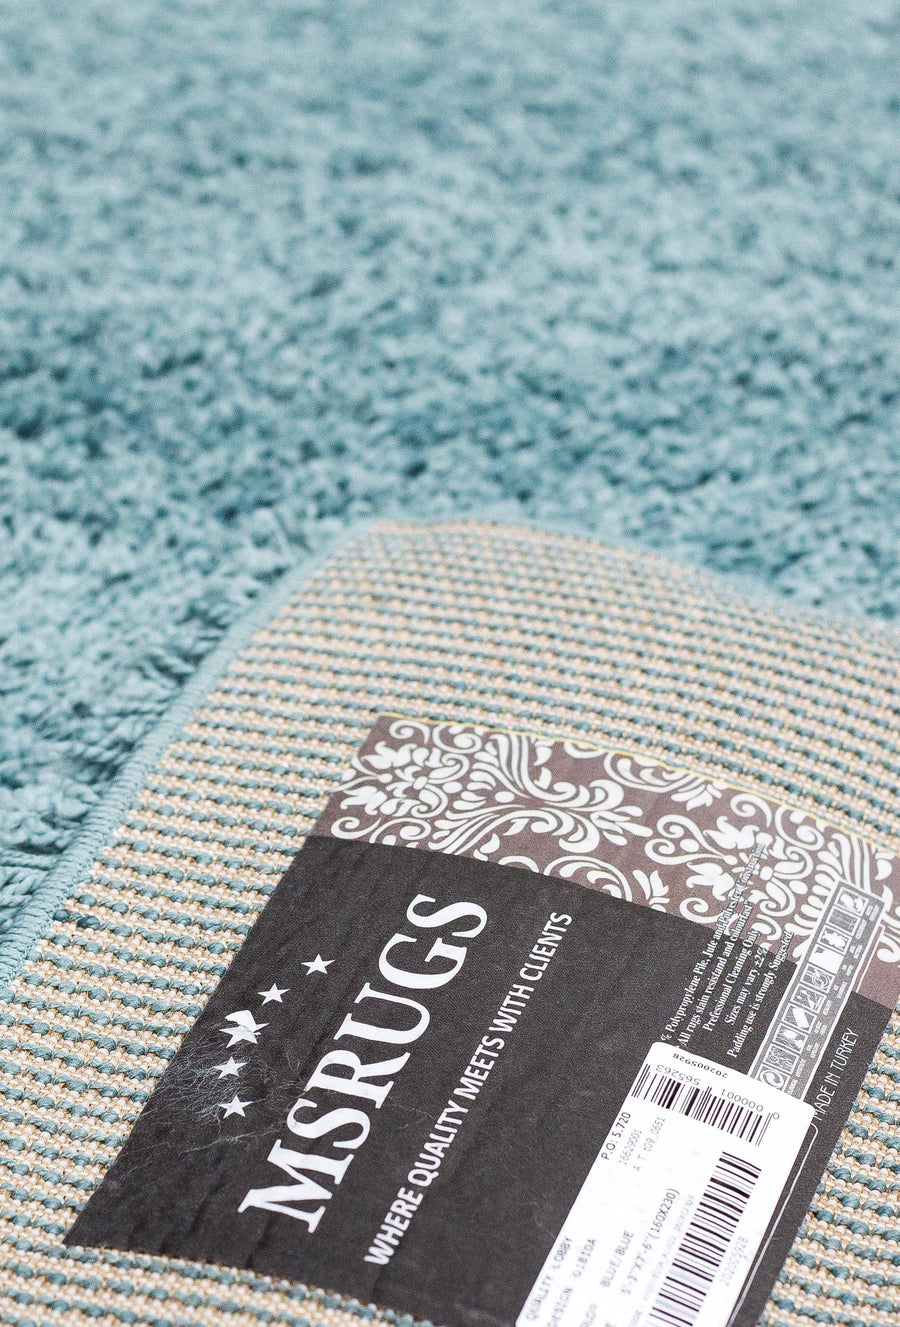 Super Shaggy Area Rug Light Blue 1810 - Context USA - Area Rug by MSRUGS